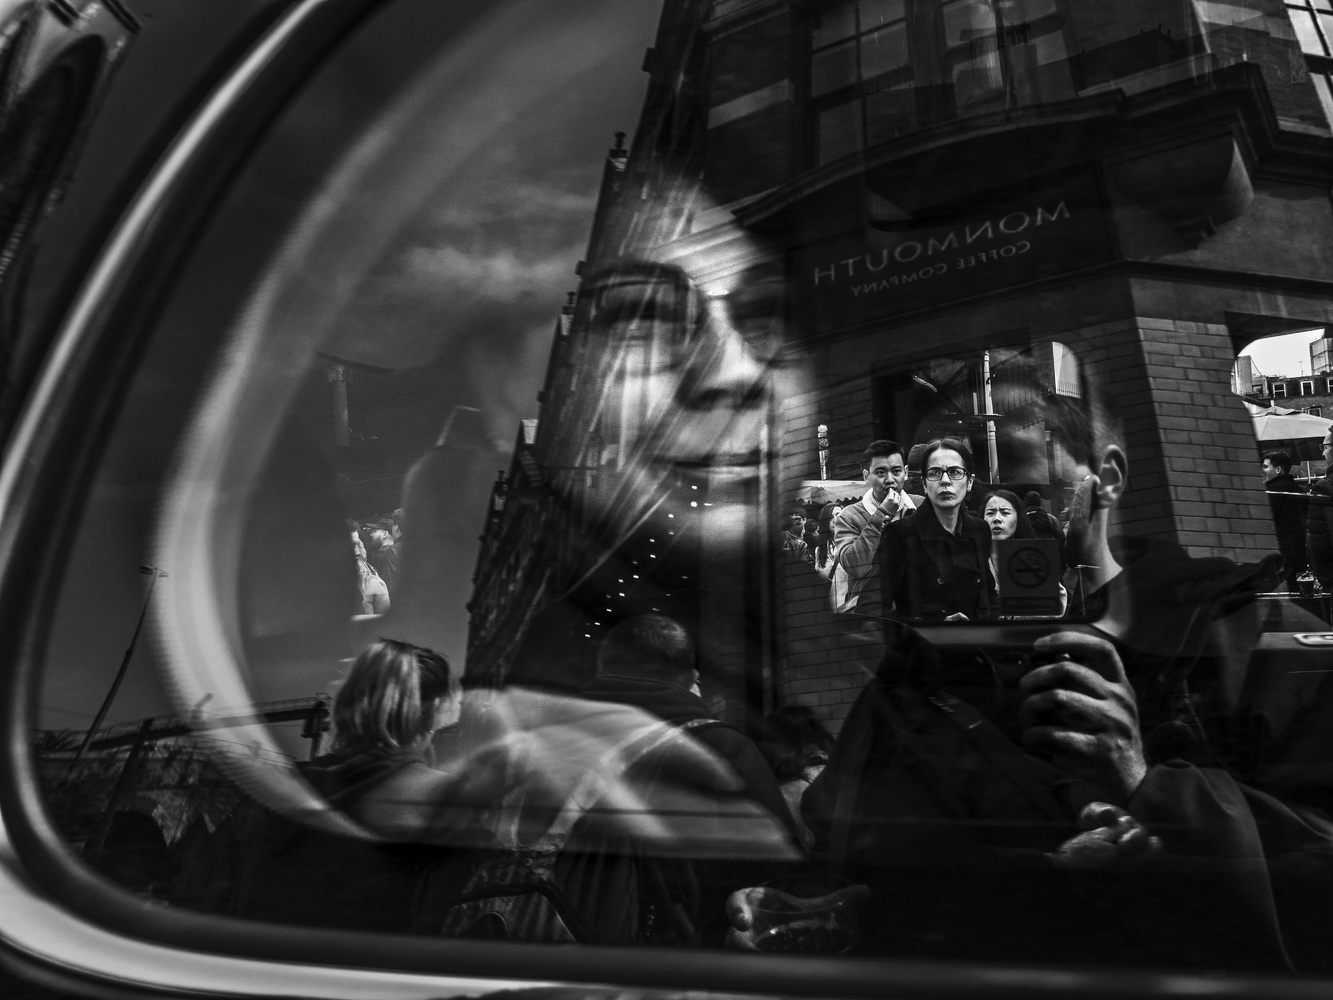 In the taxi by tomas doe